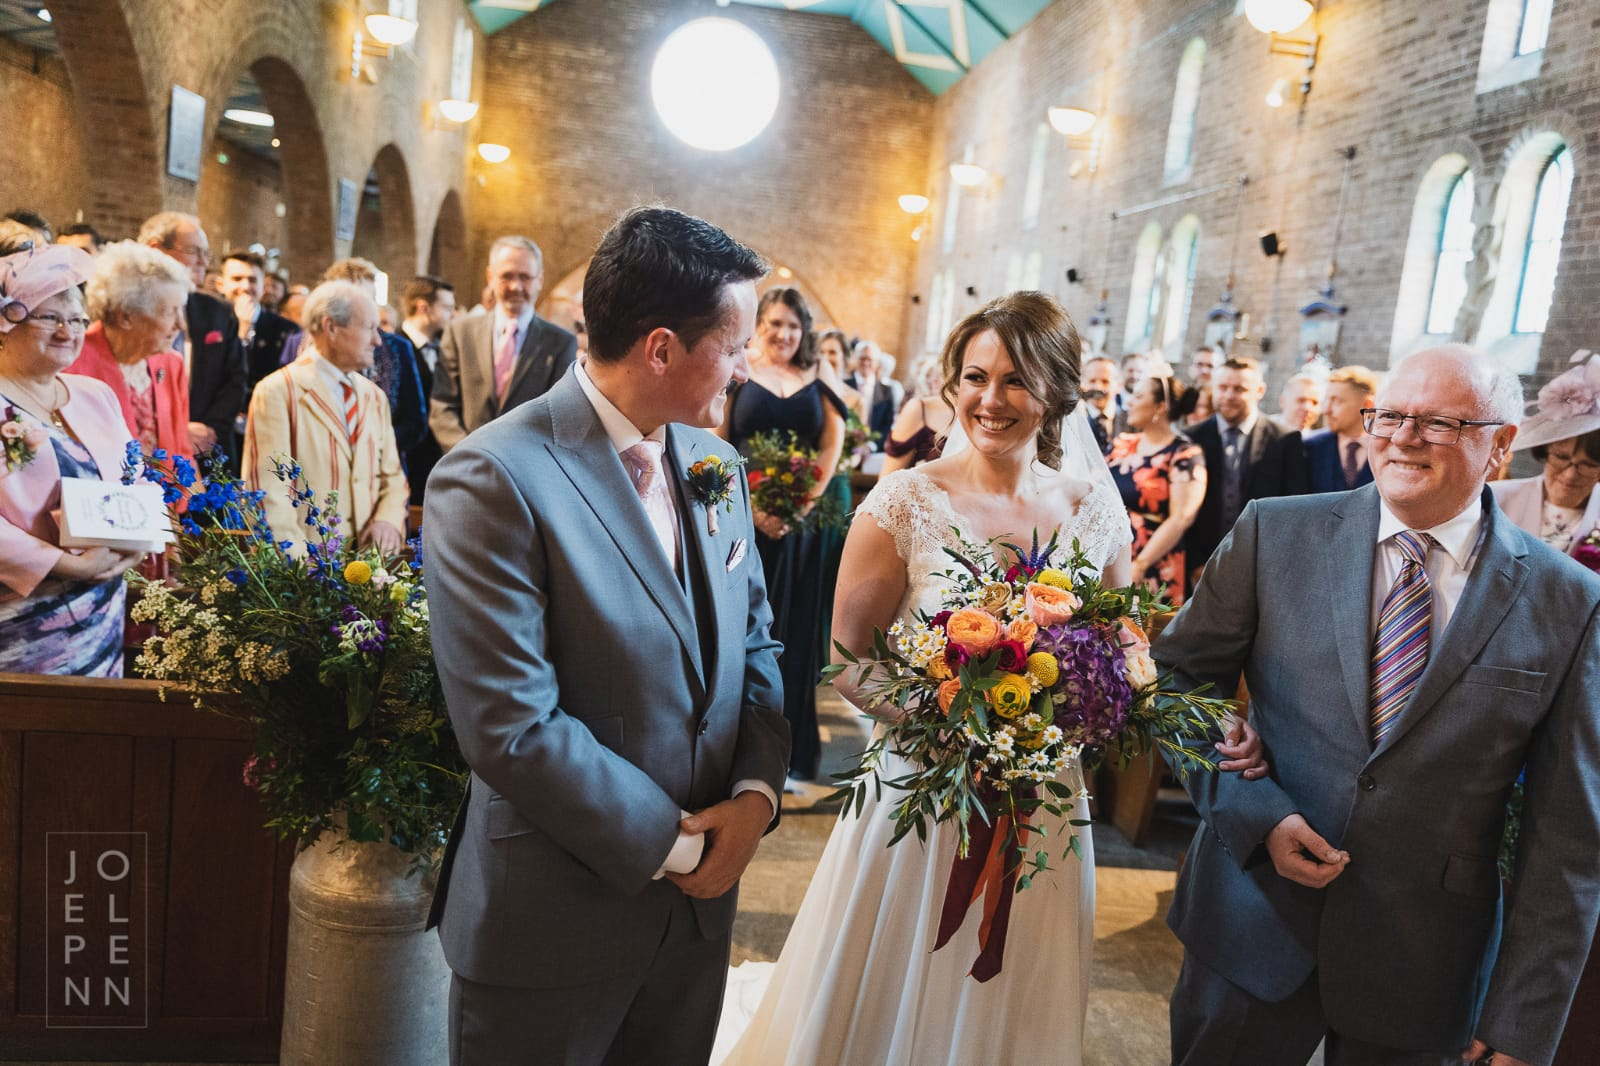 happy couple getting married in a church with bridal flowers